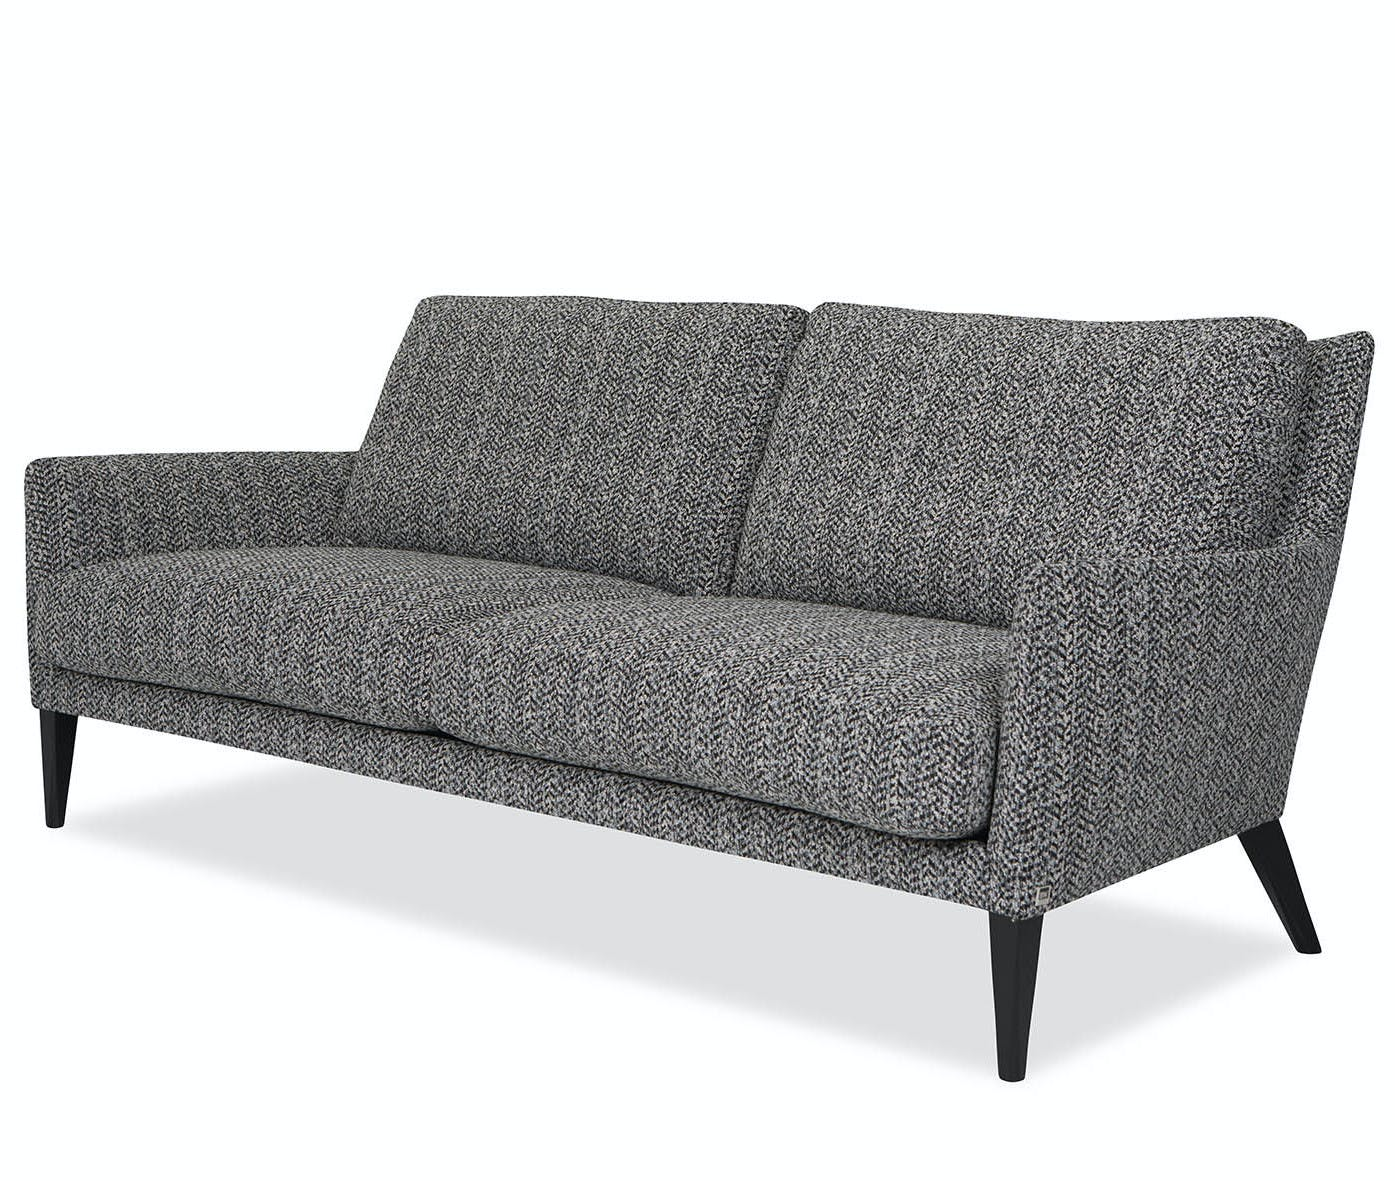 Jab Anstoetz Dark Grey Coco Sofa Haute Living